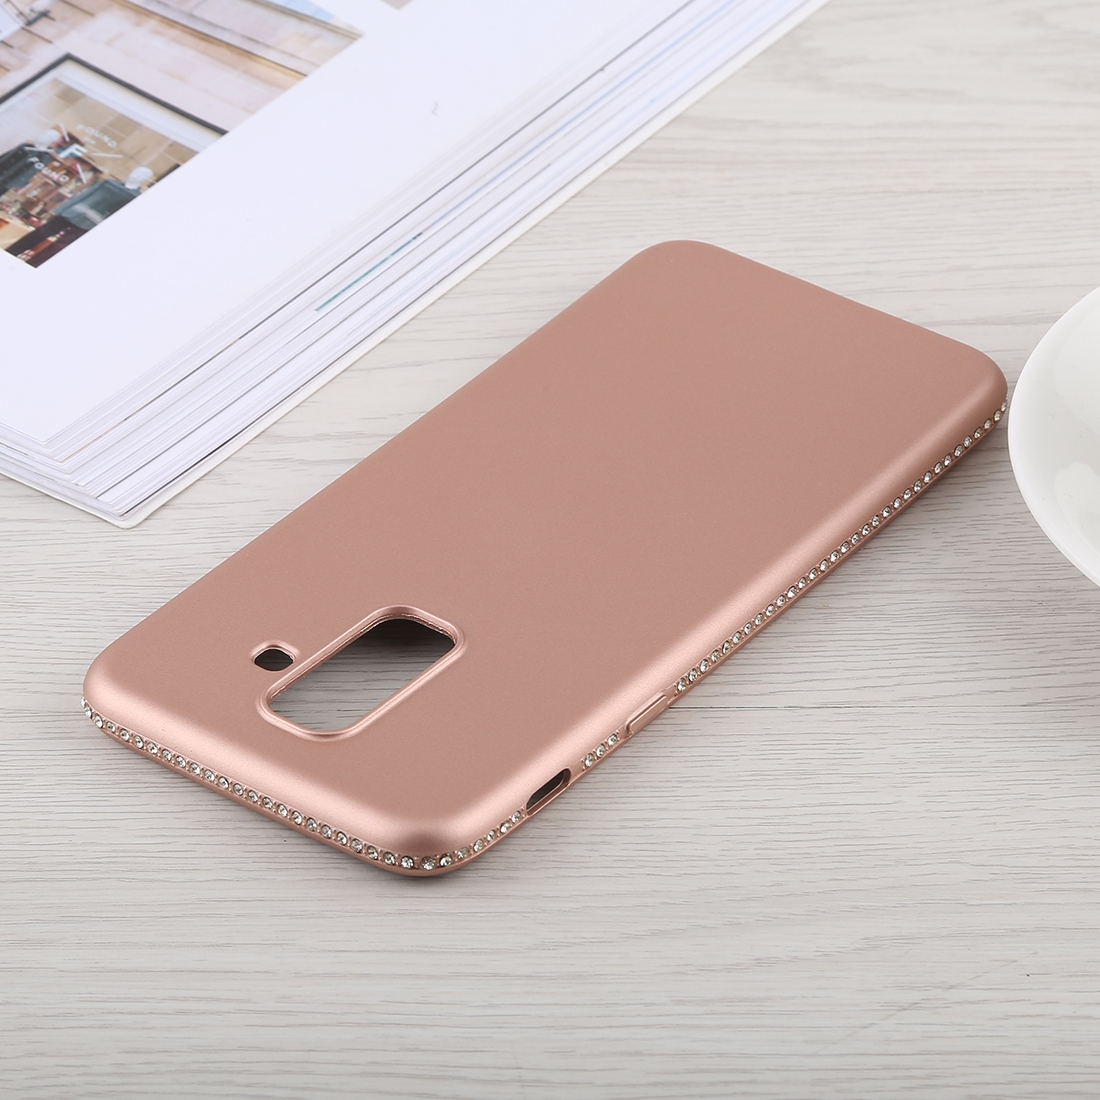 Crystal Decor Sides Smooth Surface Soft TPU Protective Back Case for Galaxy A6+ (2018) (Rose Gold)